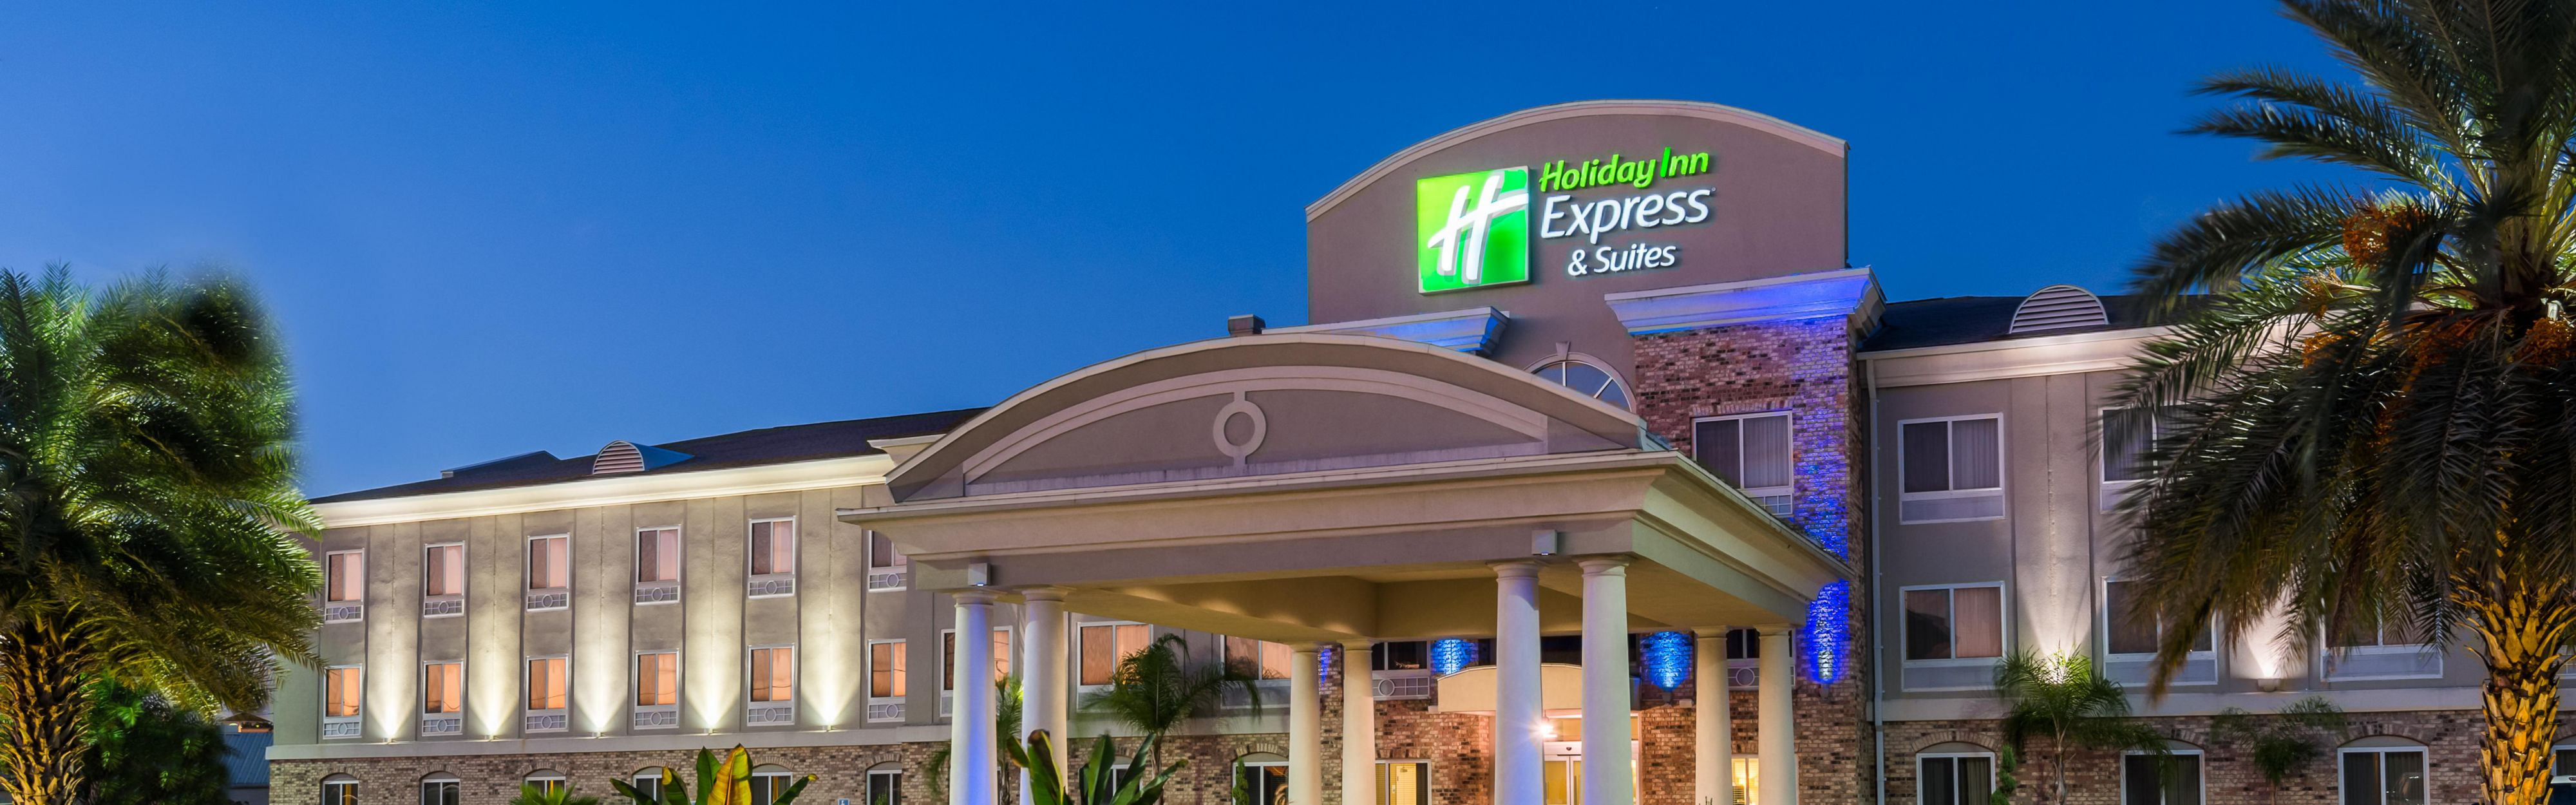 Holiday inn express suites new iberia avery island for Modern hotels near me